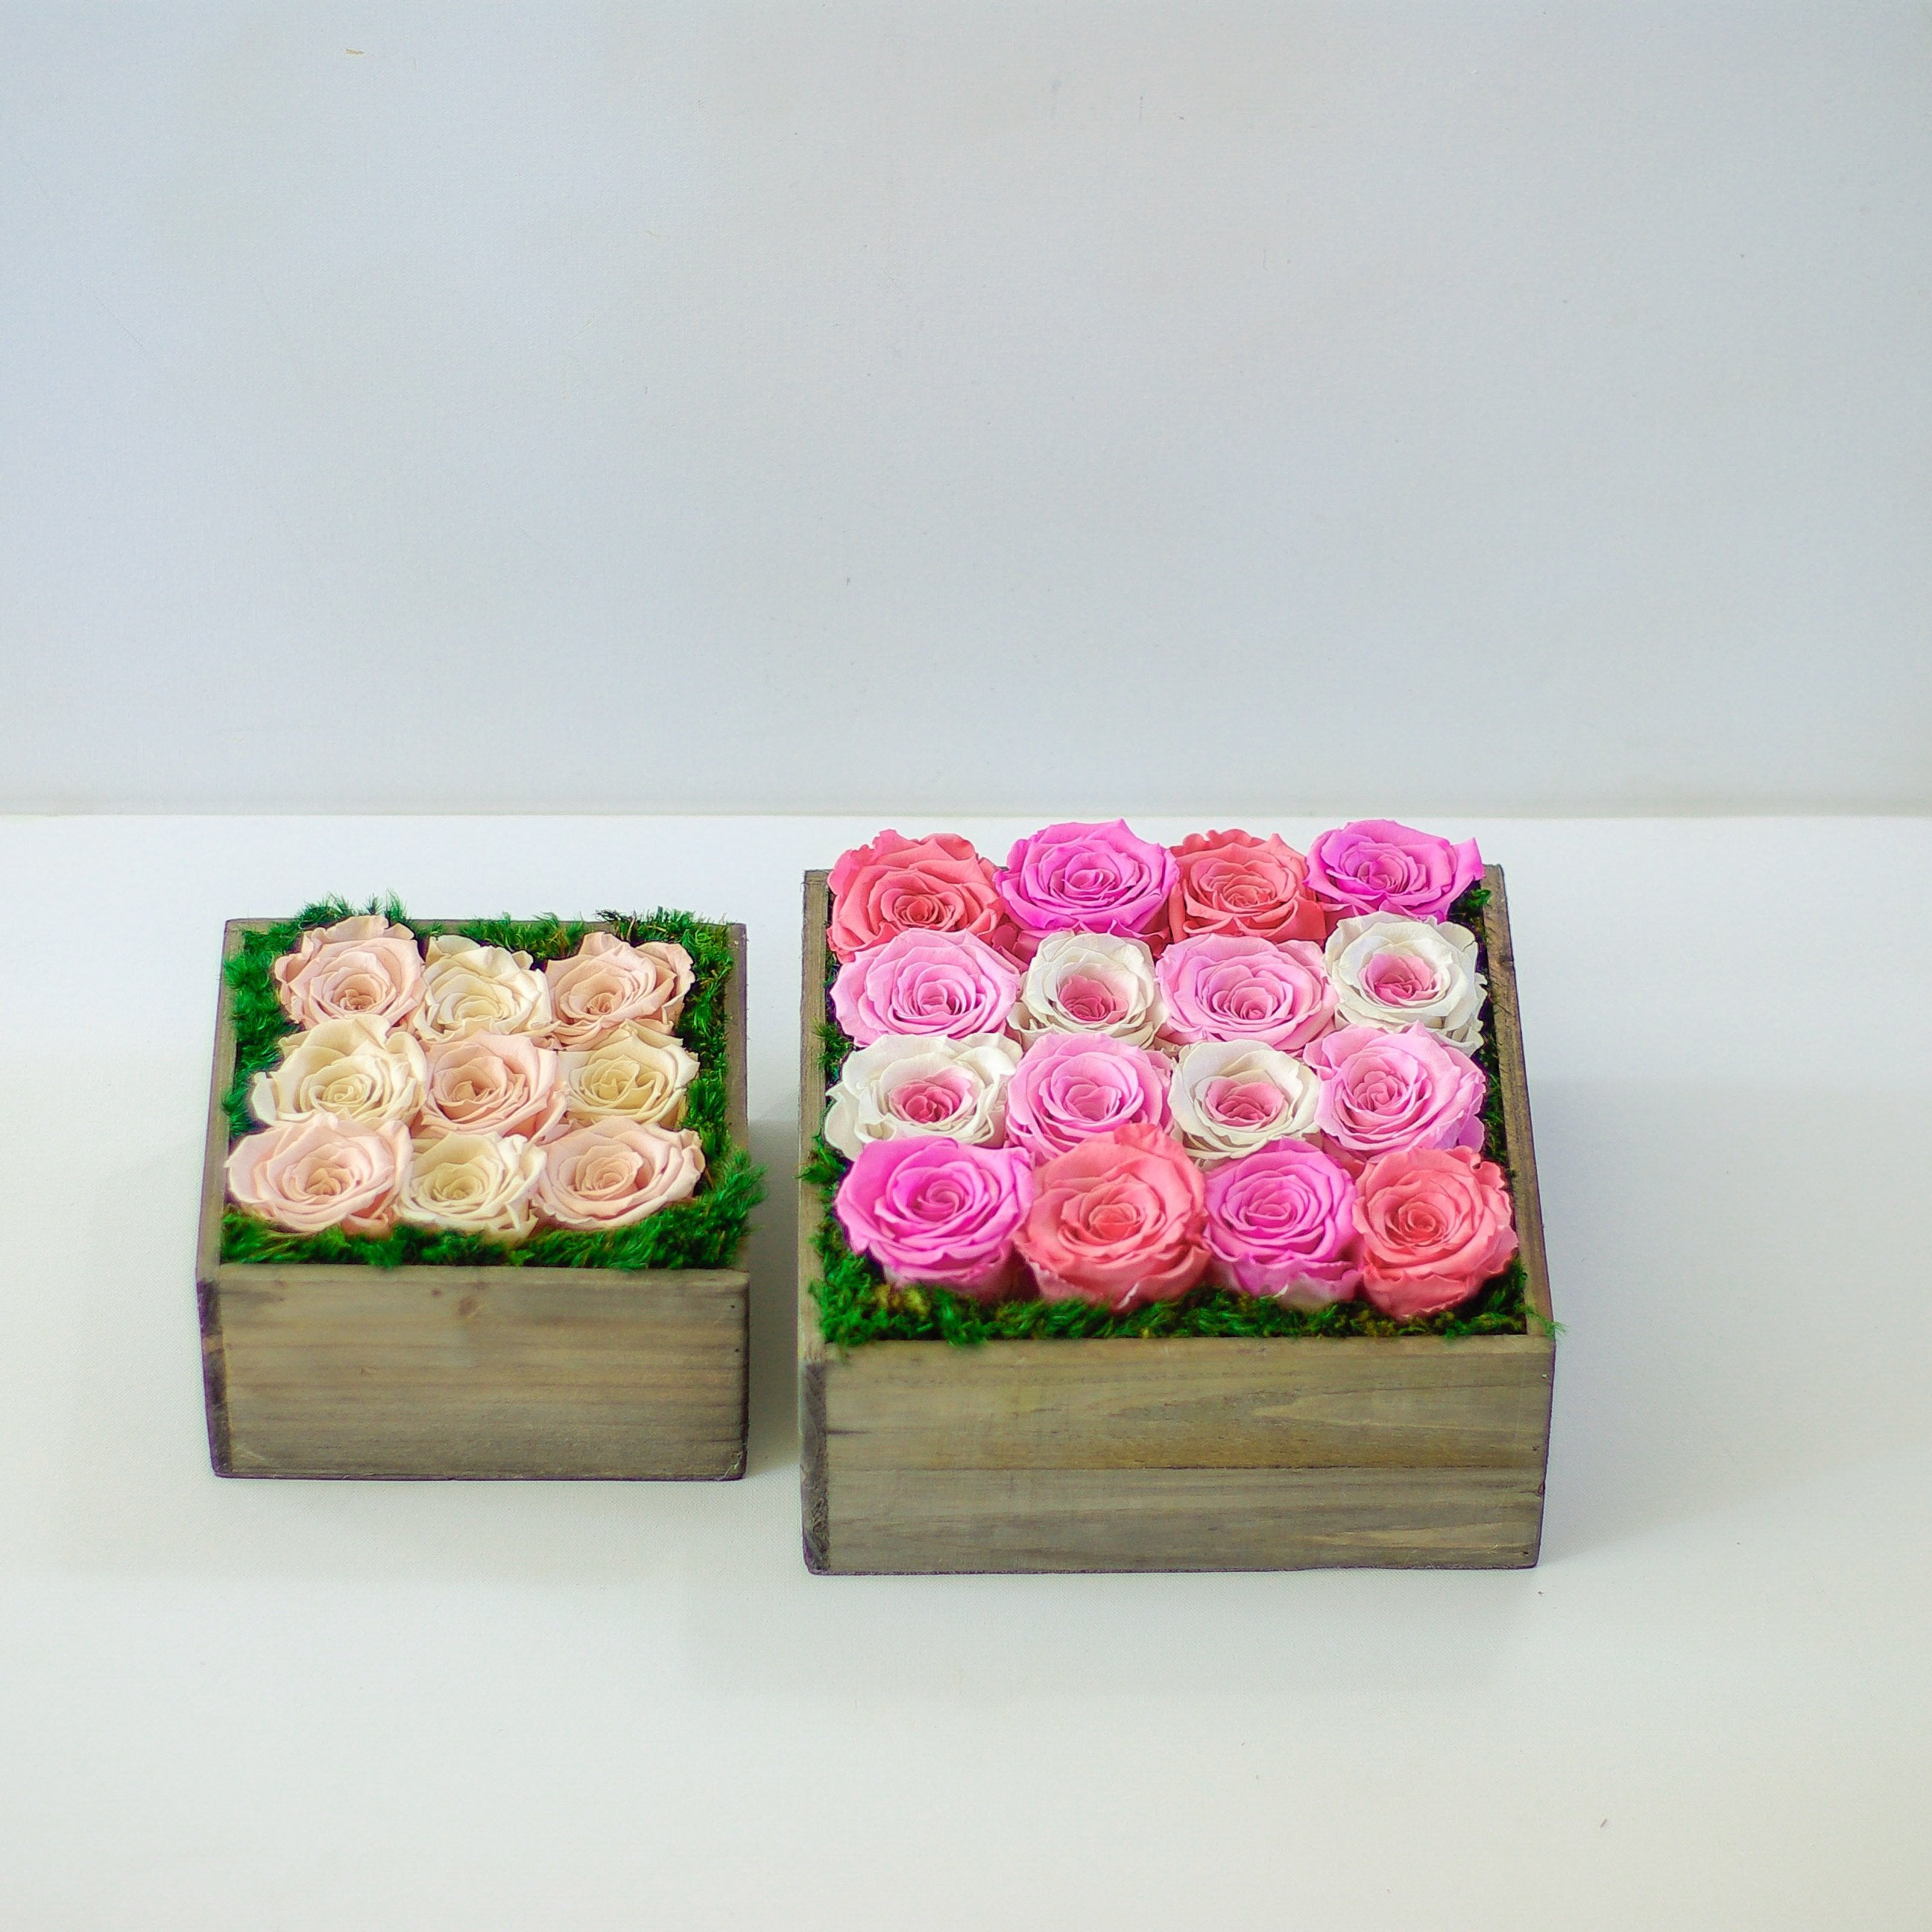 Real preserved roses that won't wilt!